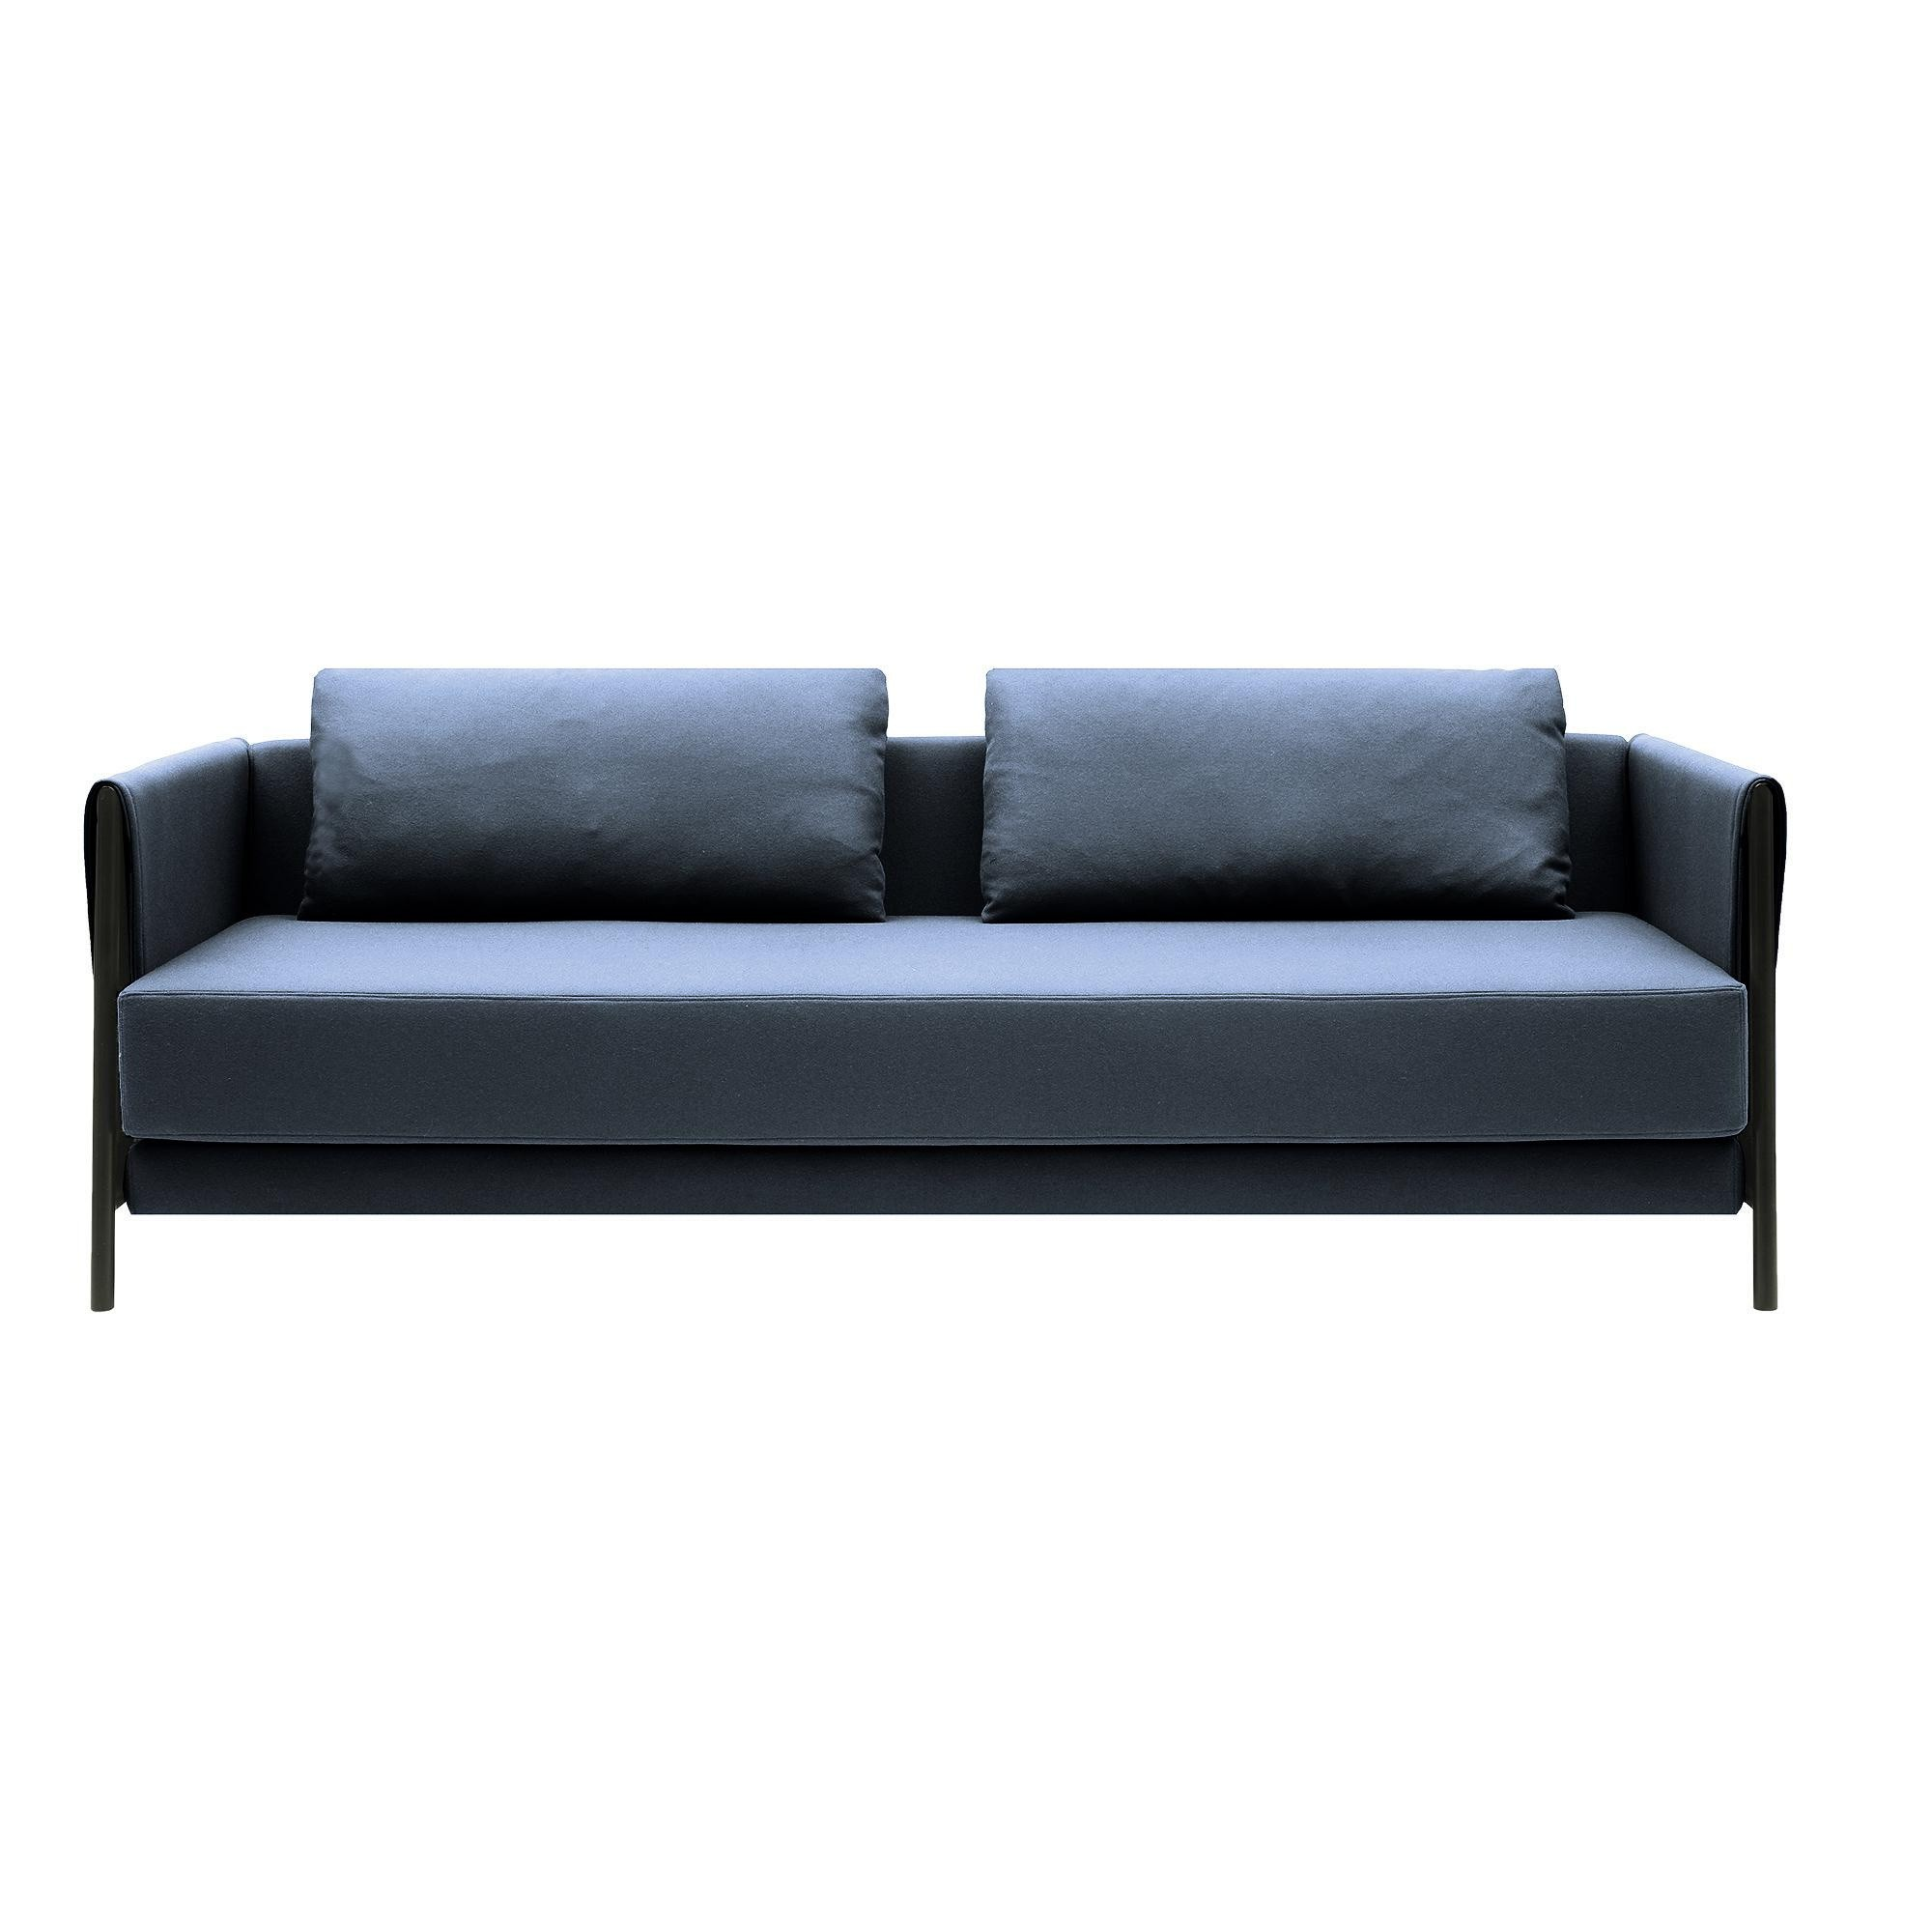 Softline Schlafsofa Madison Sofa Bed